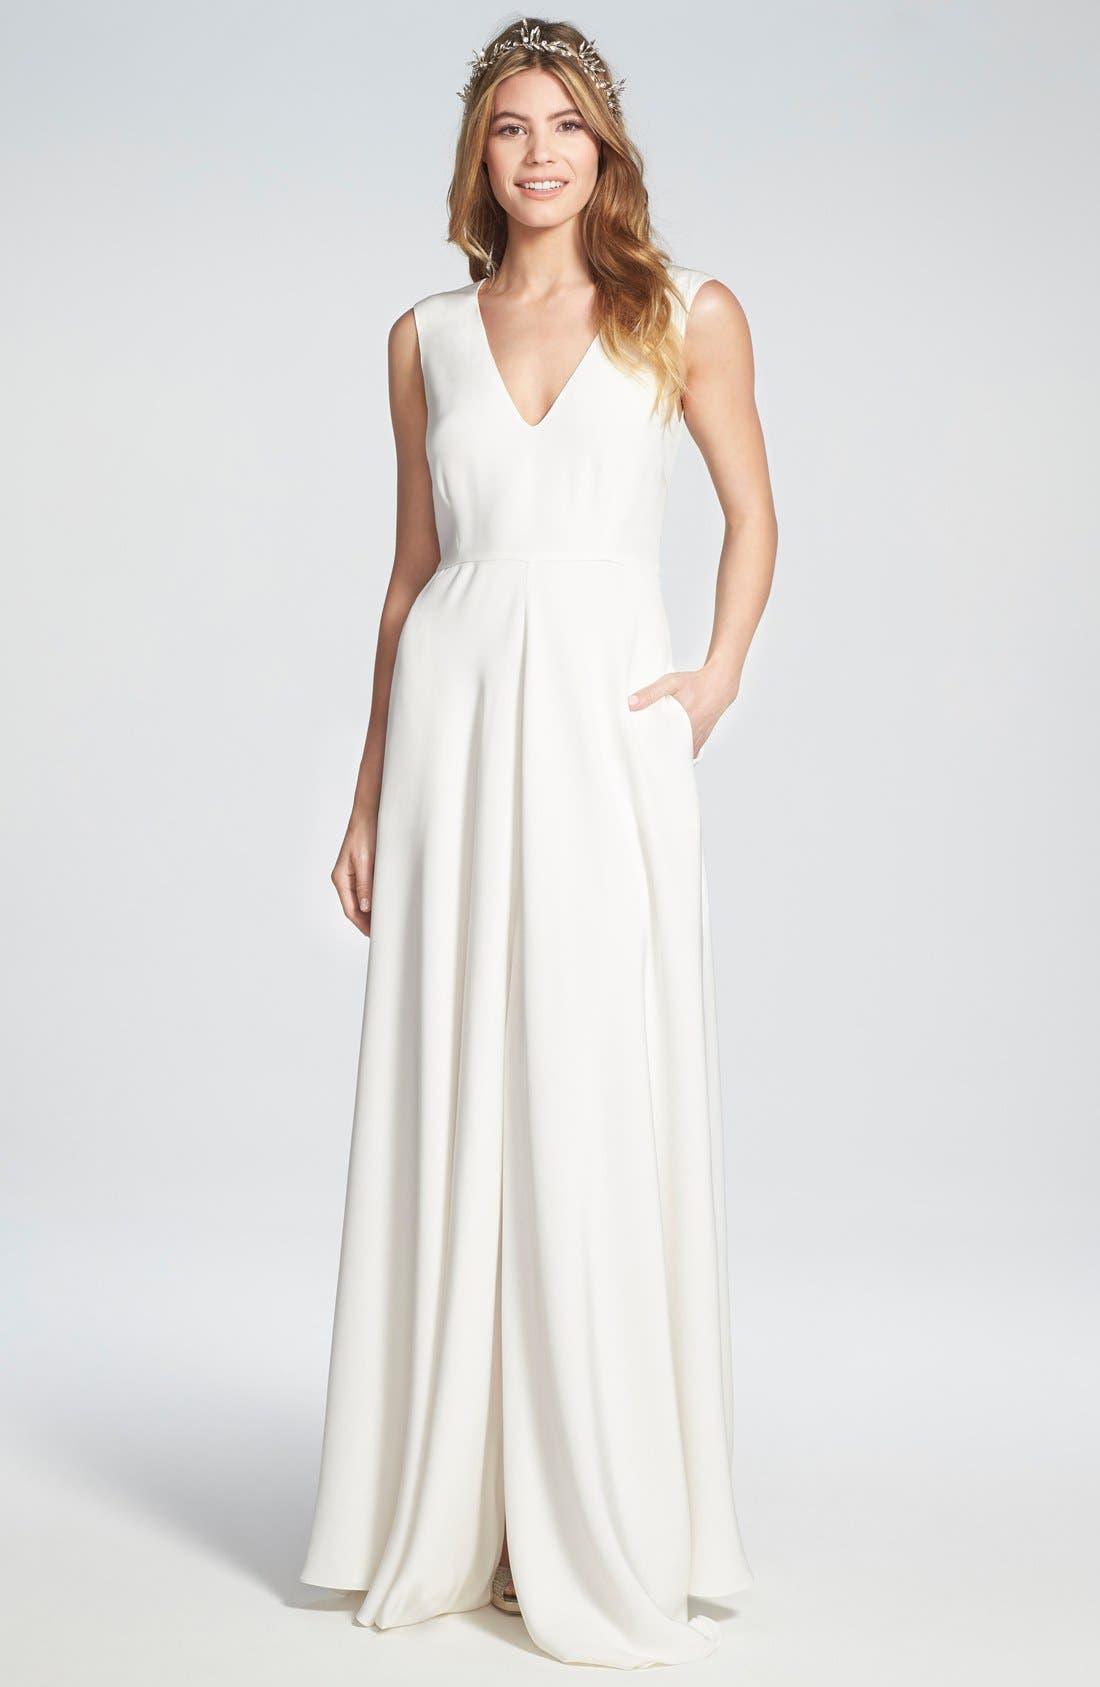 Houghton 'Grady' Sleeveless Silk V-Neck Gown